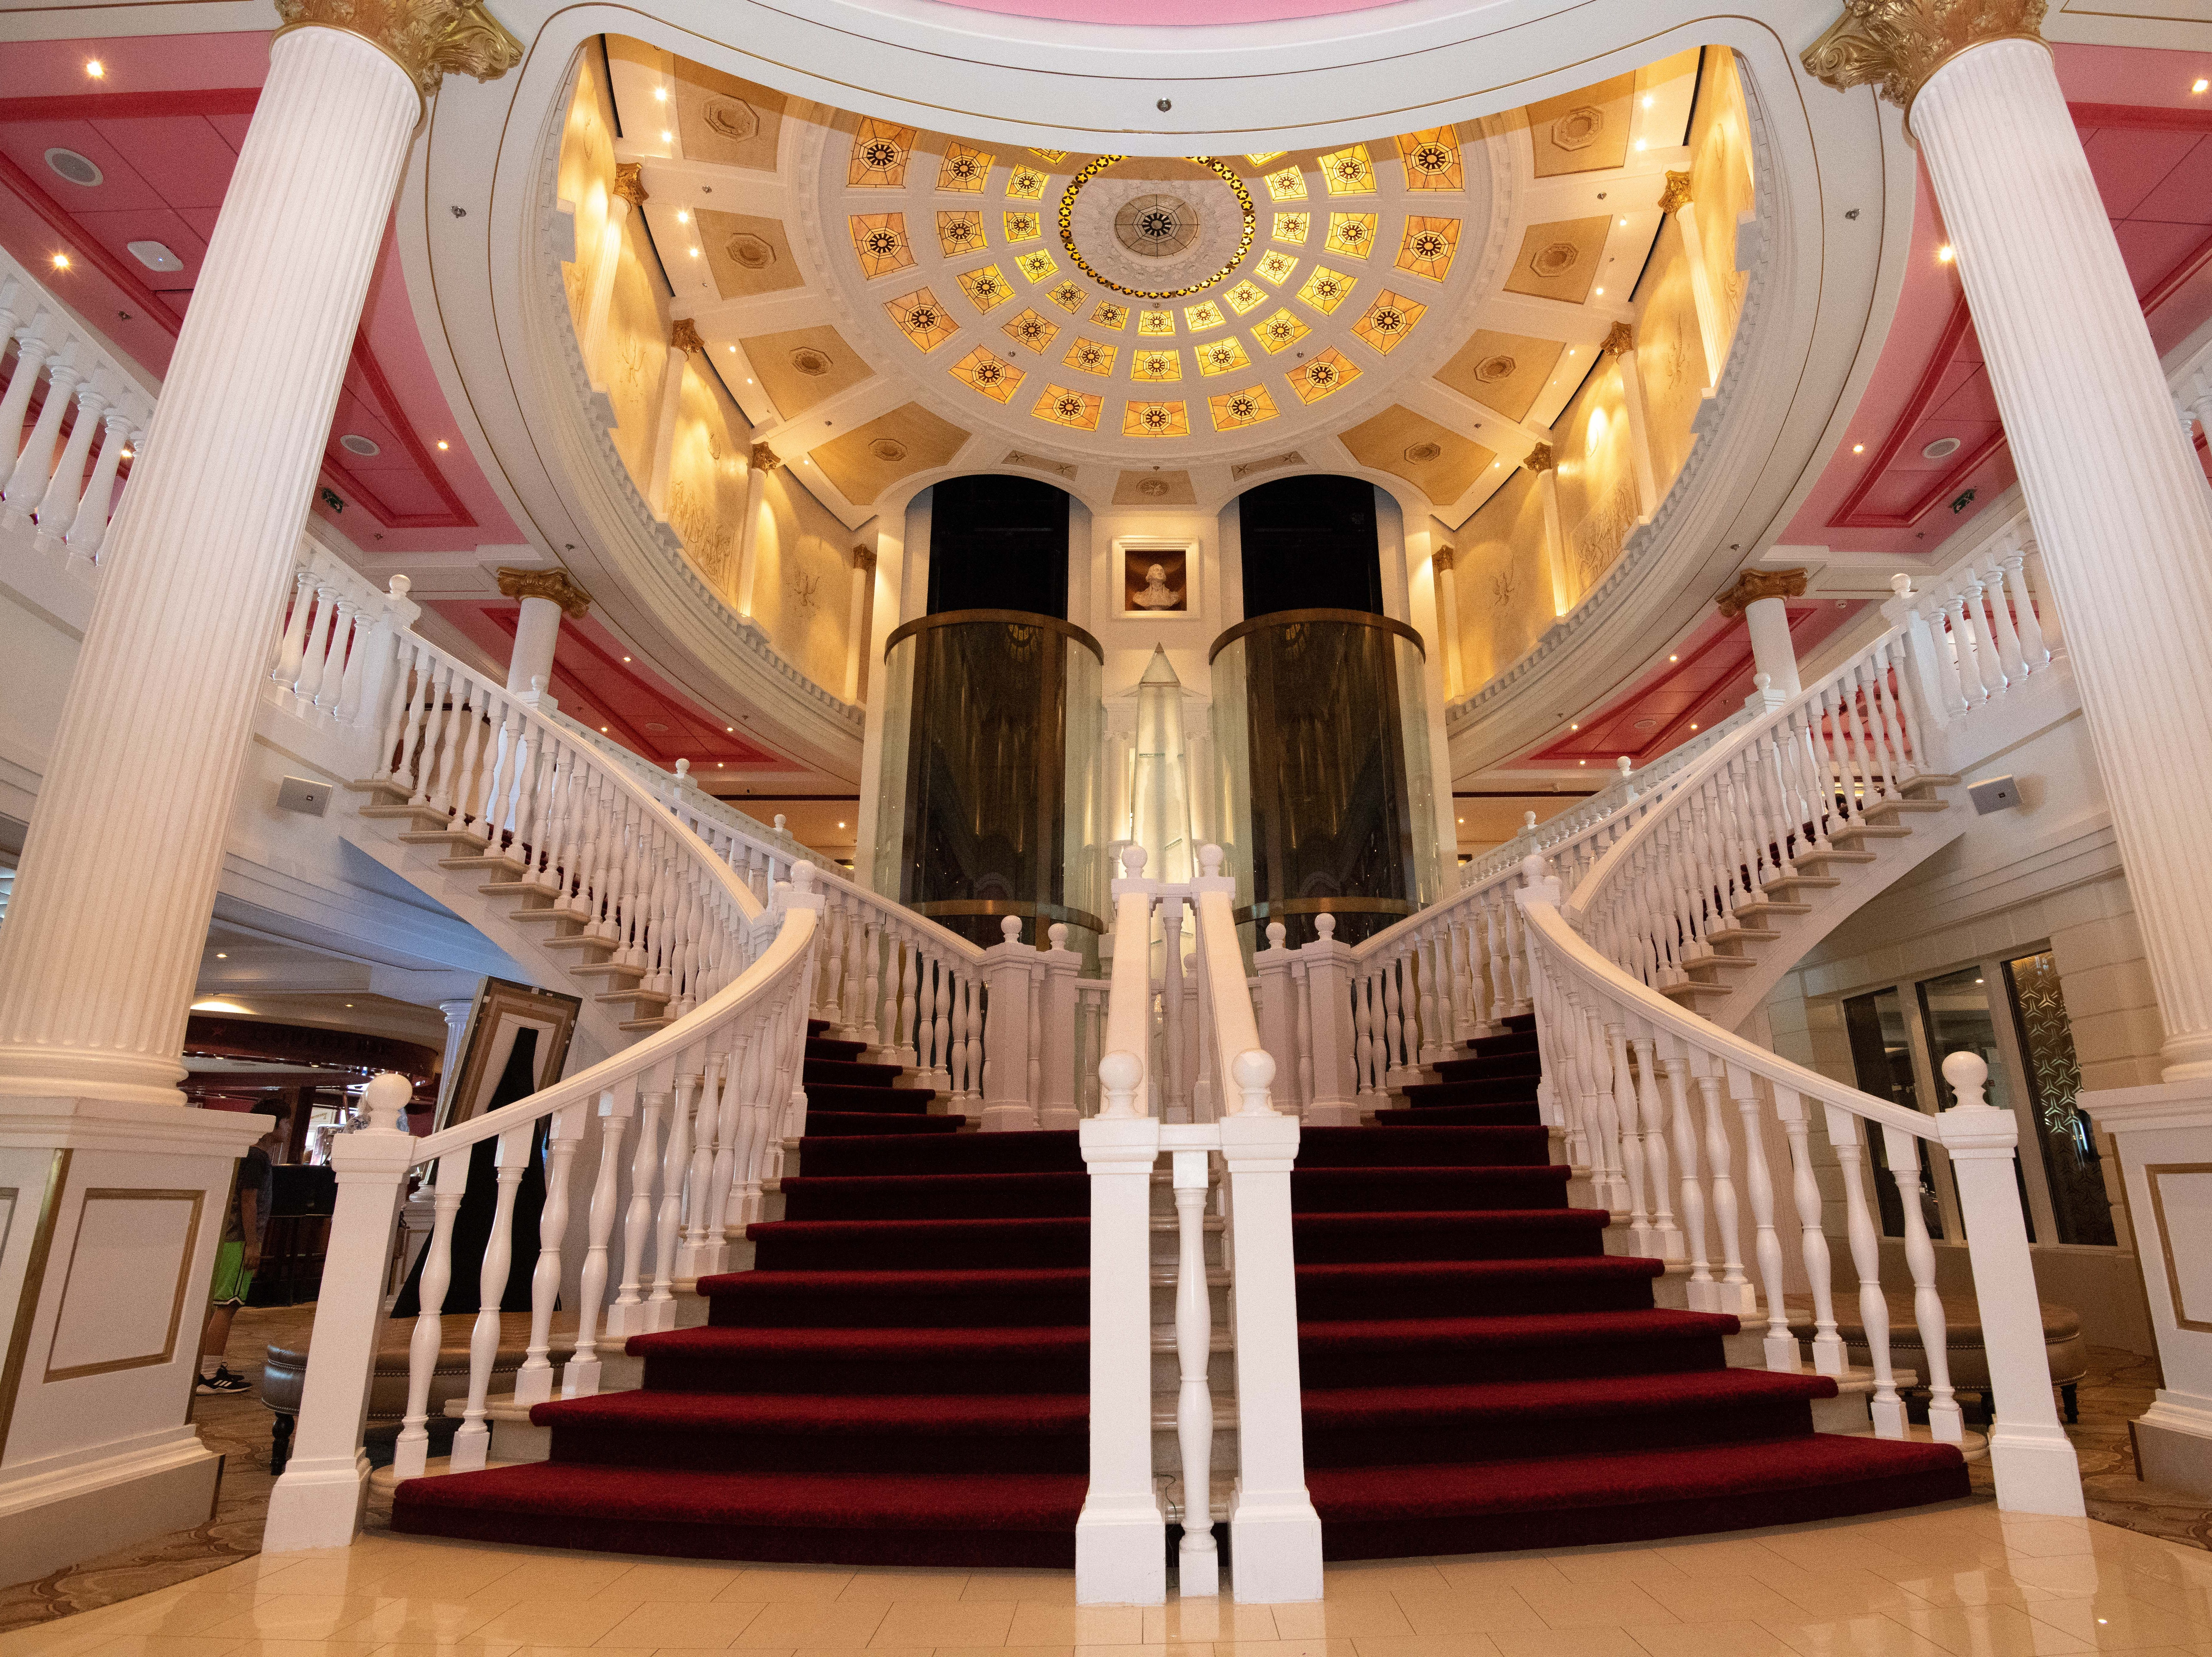 The focal point of the Capitol Atrium is a grand staircase that connects decks 5 and 6, where many of Pride of America's restaurants and lounges are located.